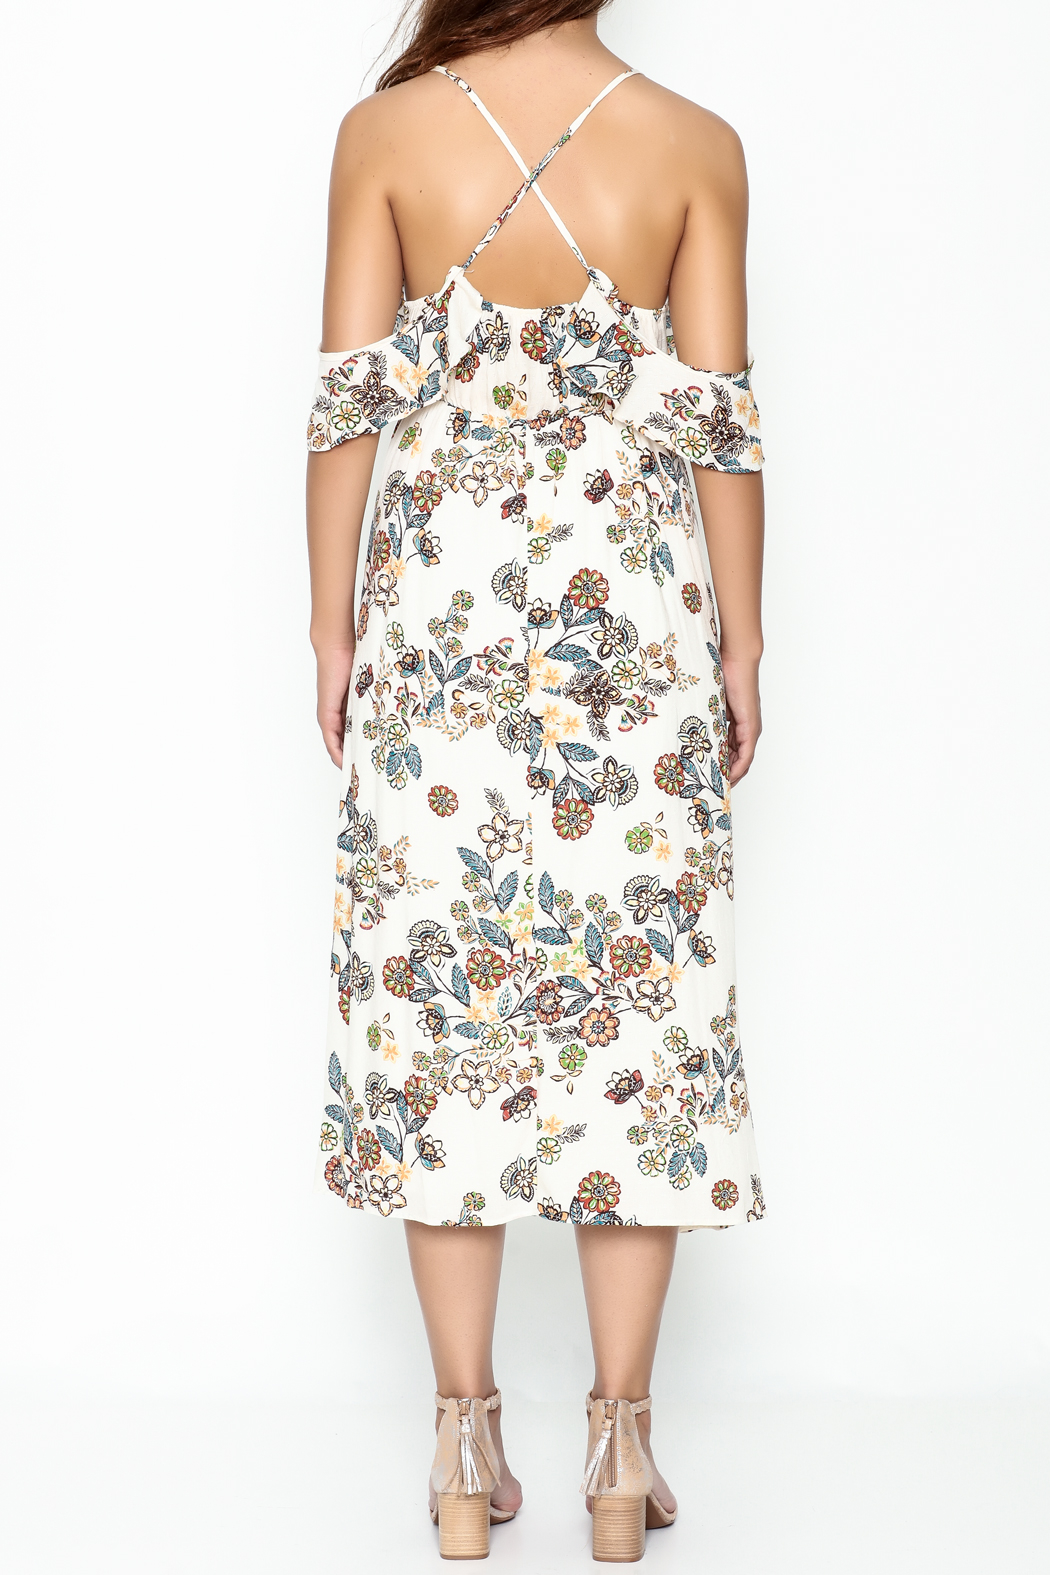 hummingbird Floral Dress - Back Cropped Image